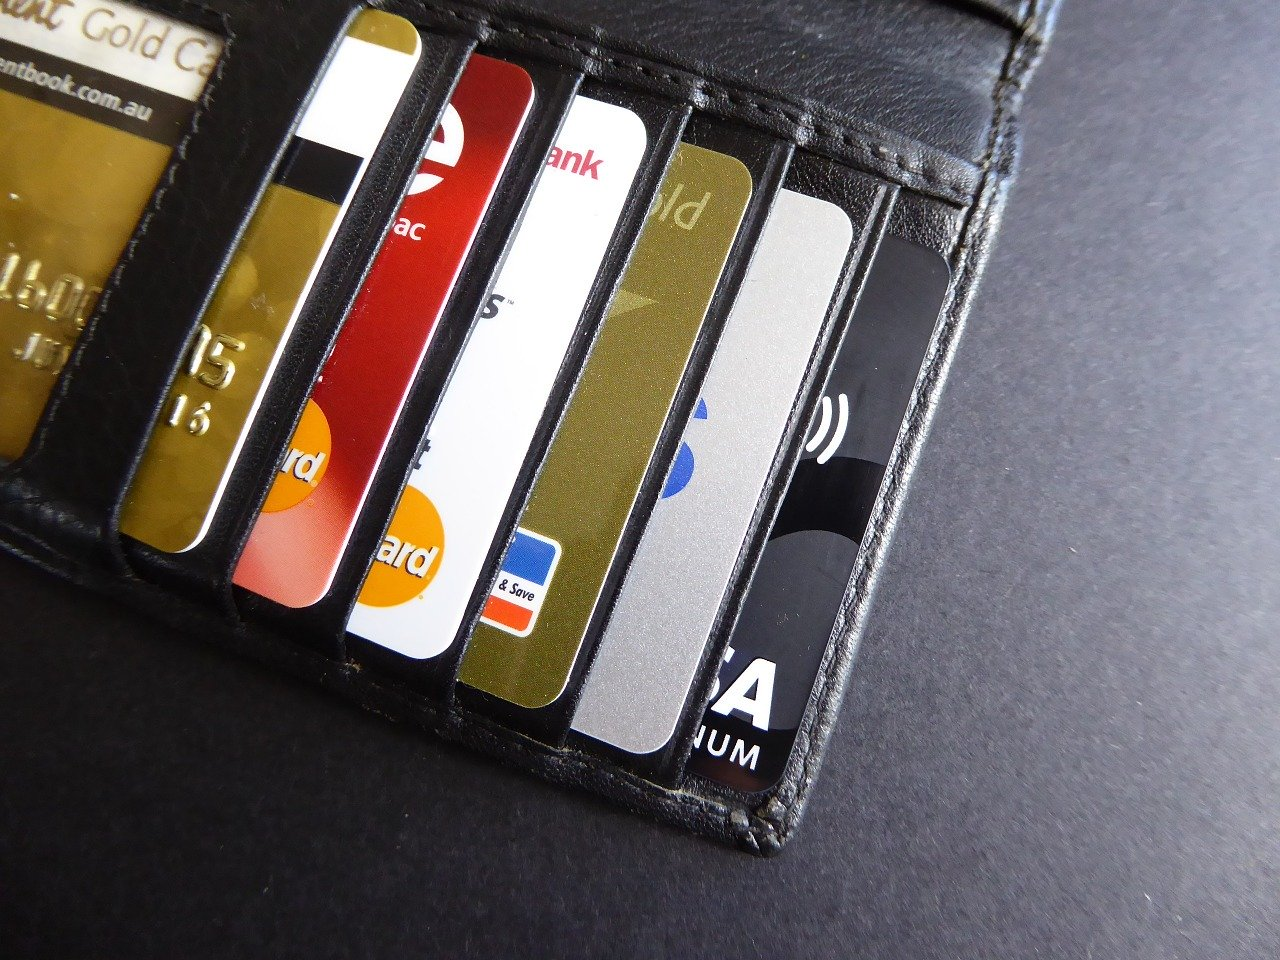 wallet with row of credit and debit cards